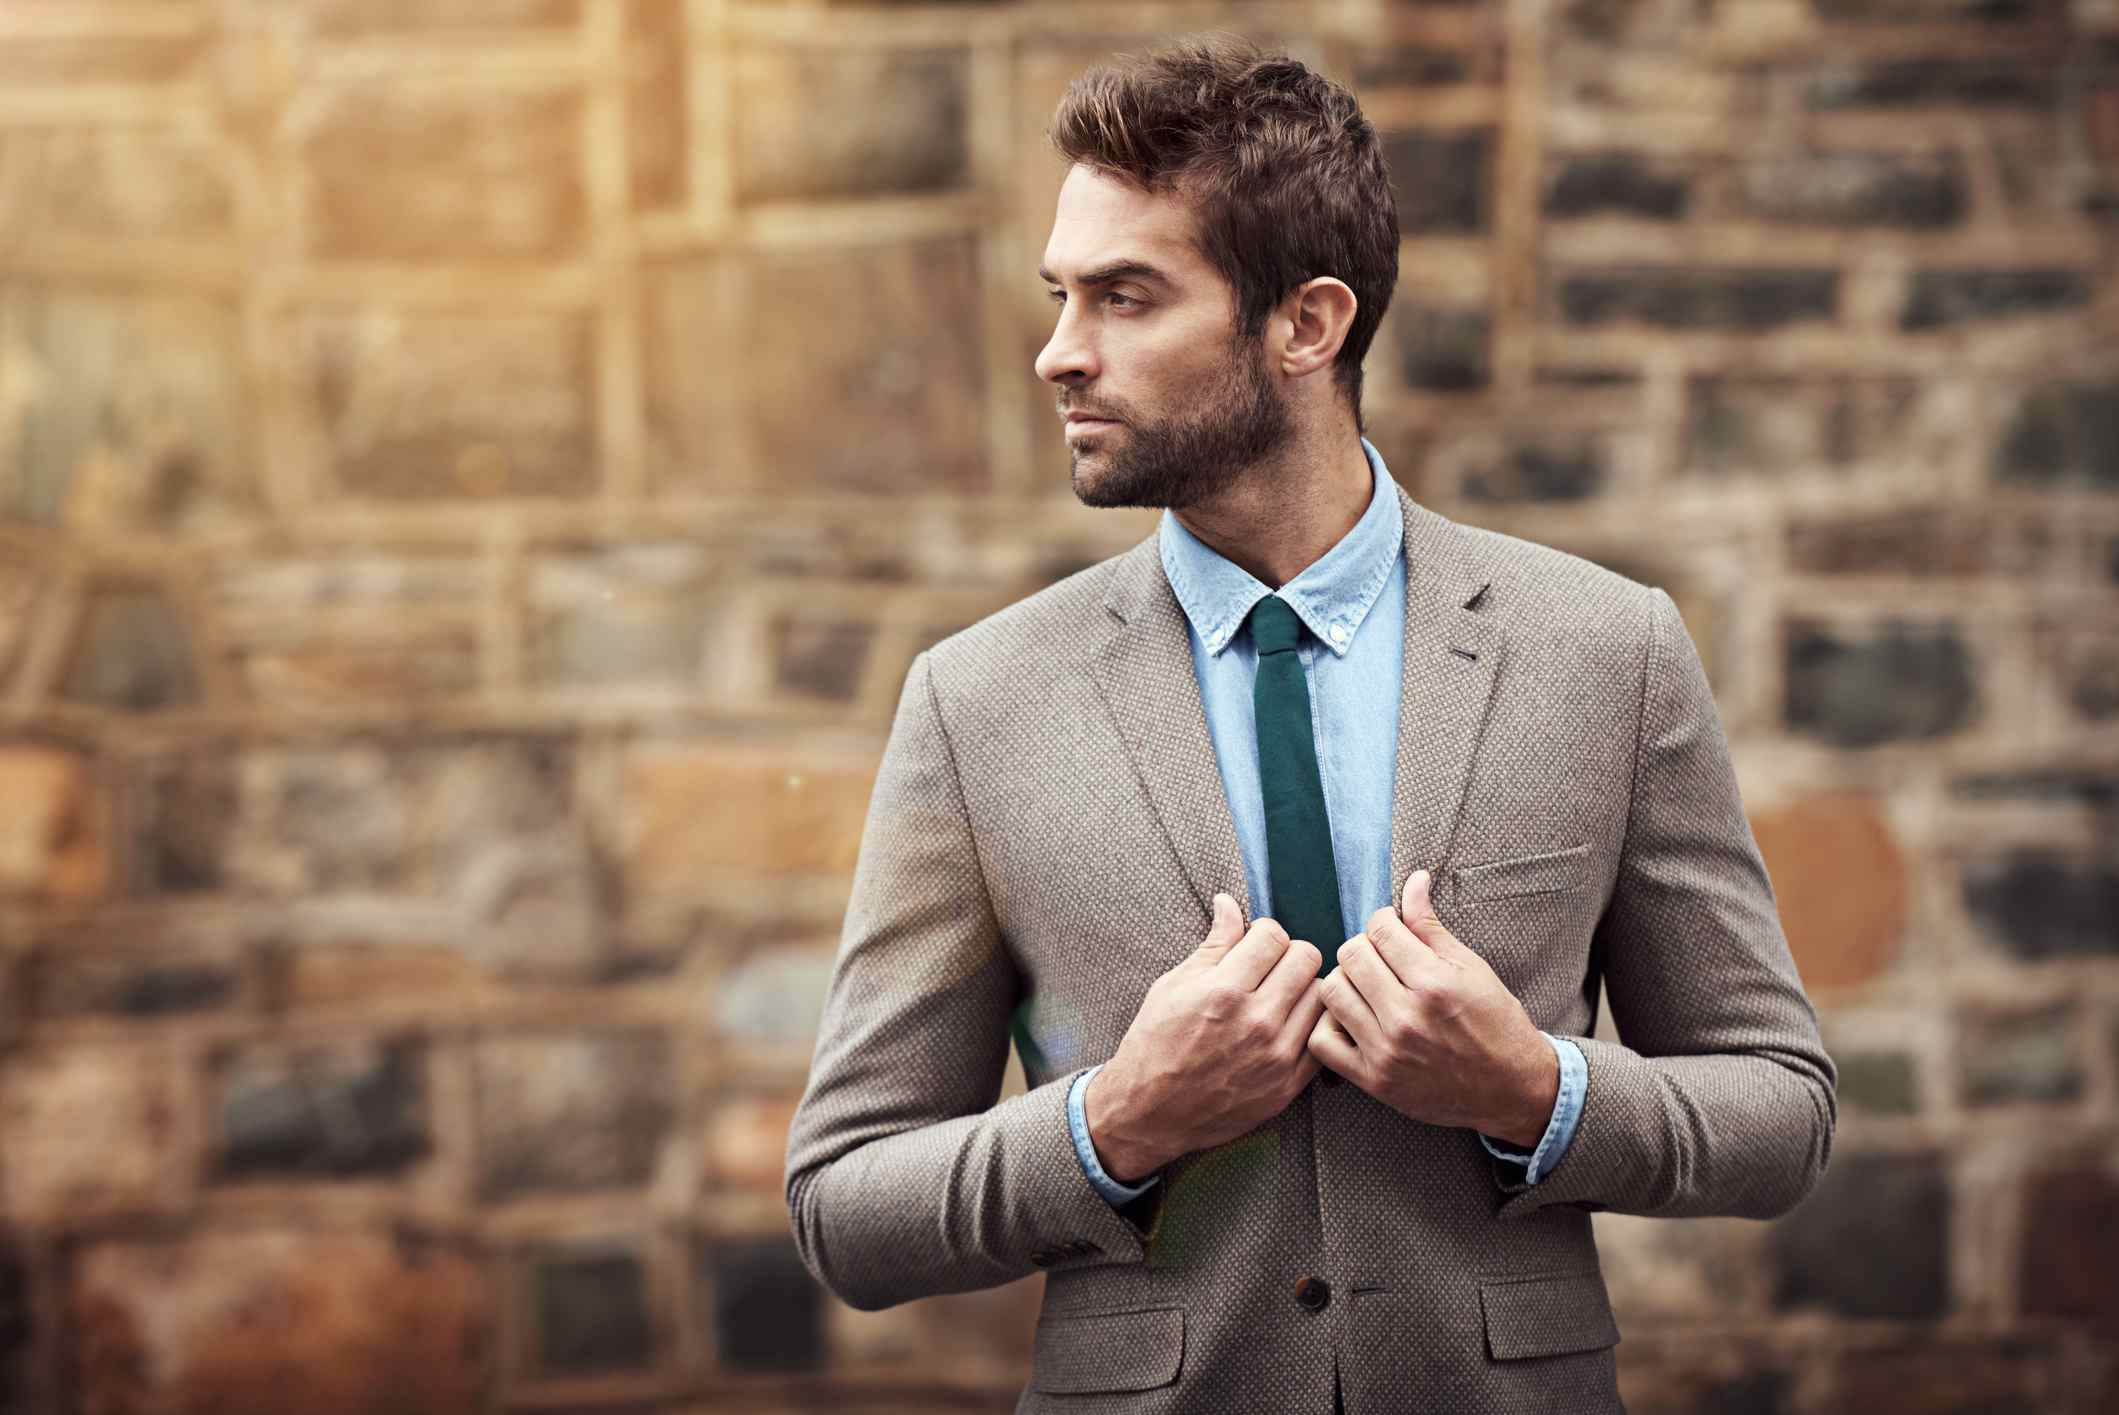 Male model posing in front of stone wall